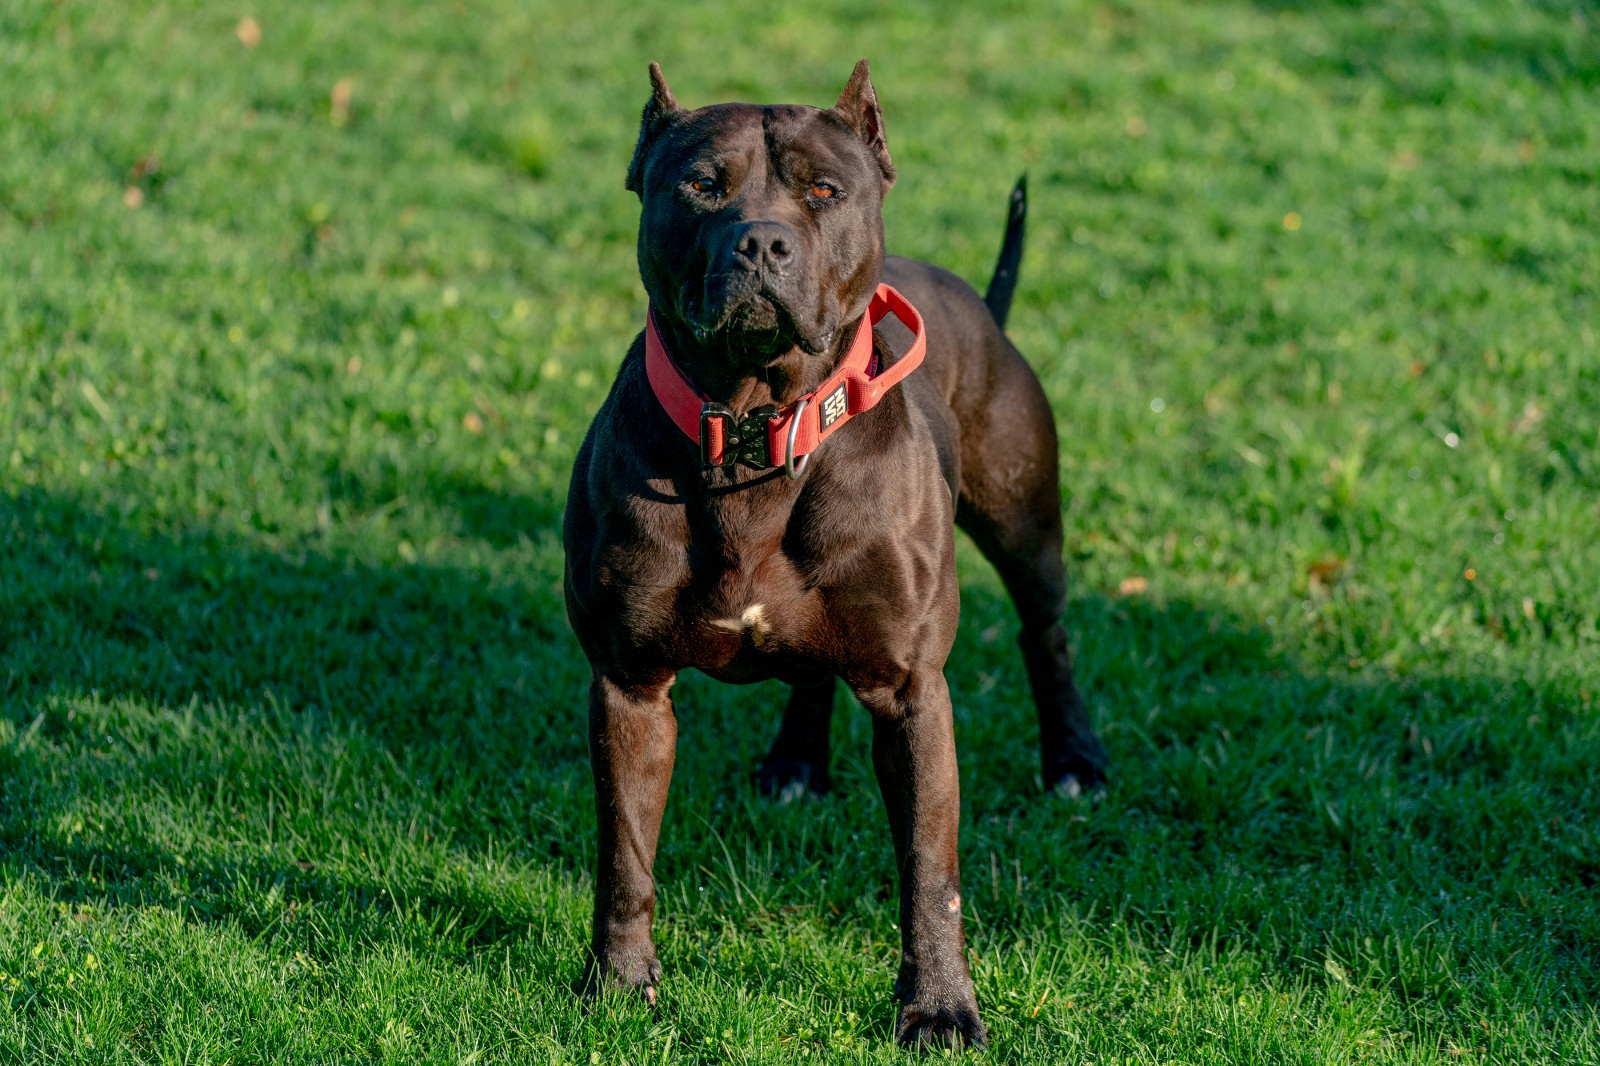 Batman, AKA Bruce Wayne, a muscular beast of a black pit bull wearing a red collar stands, stacked, at attention.